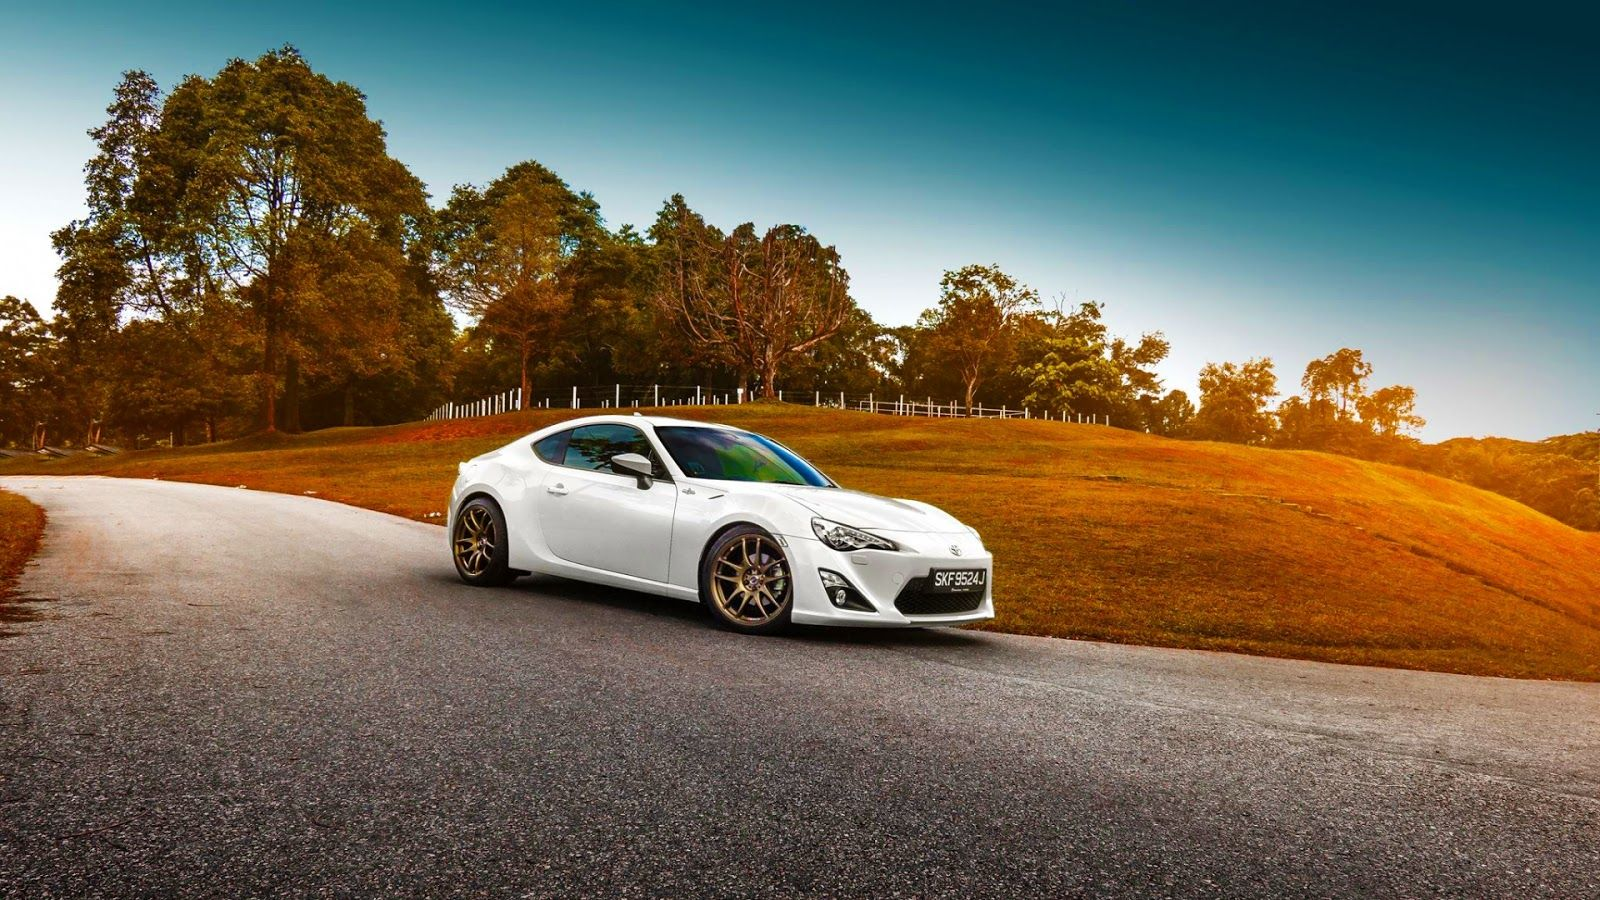 20 Toyota GT86 Wallpapers Toyota gt86, Toyota, Car hd